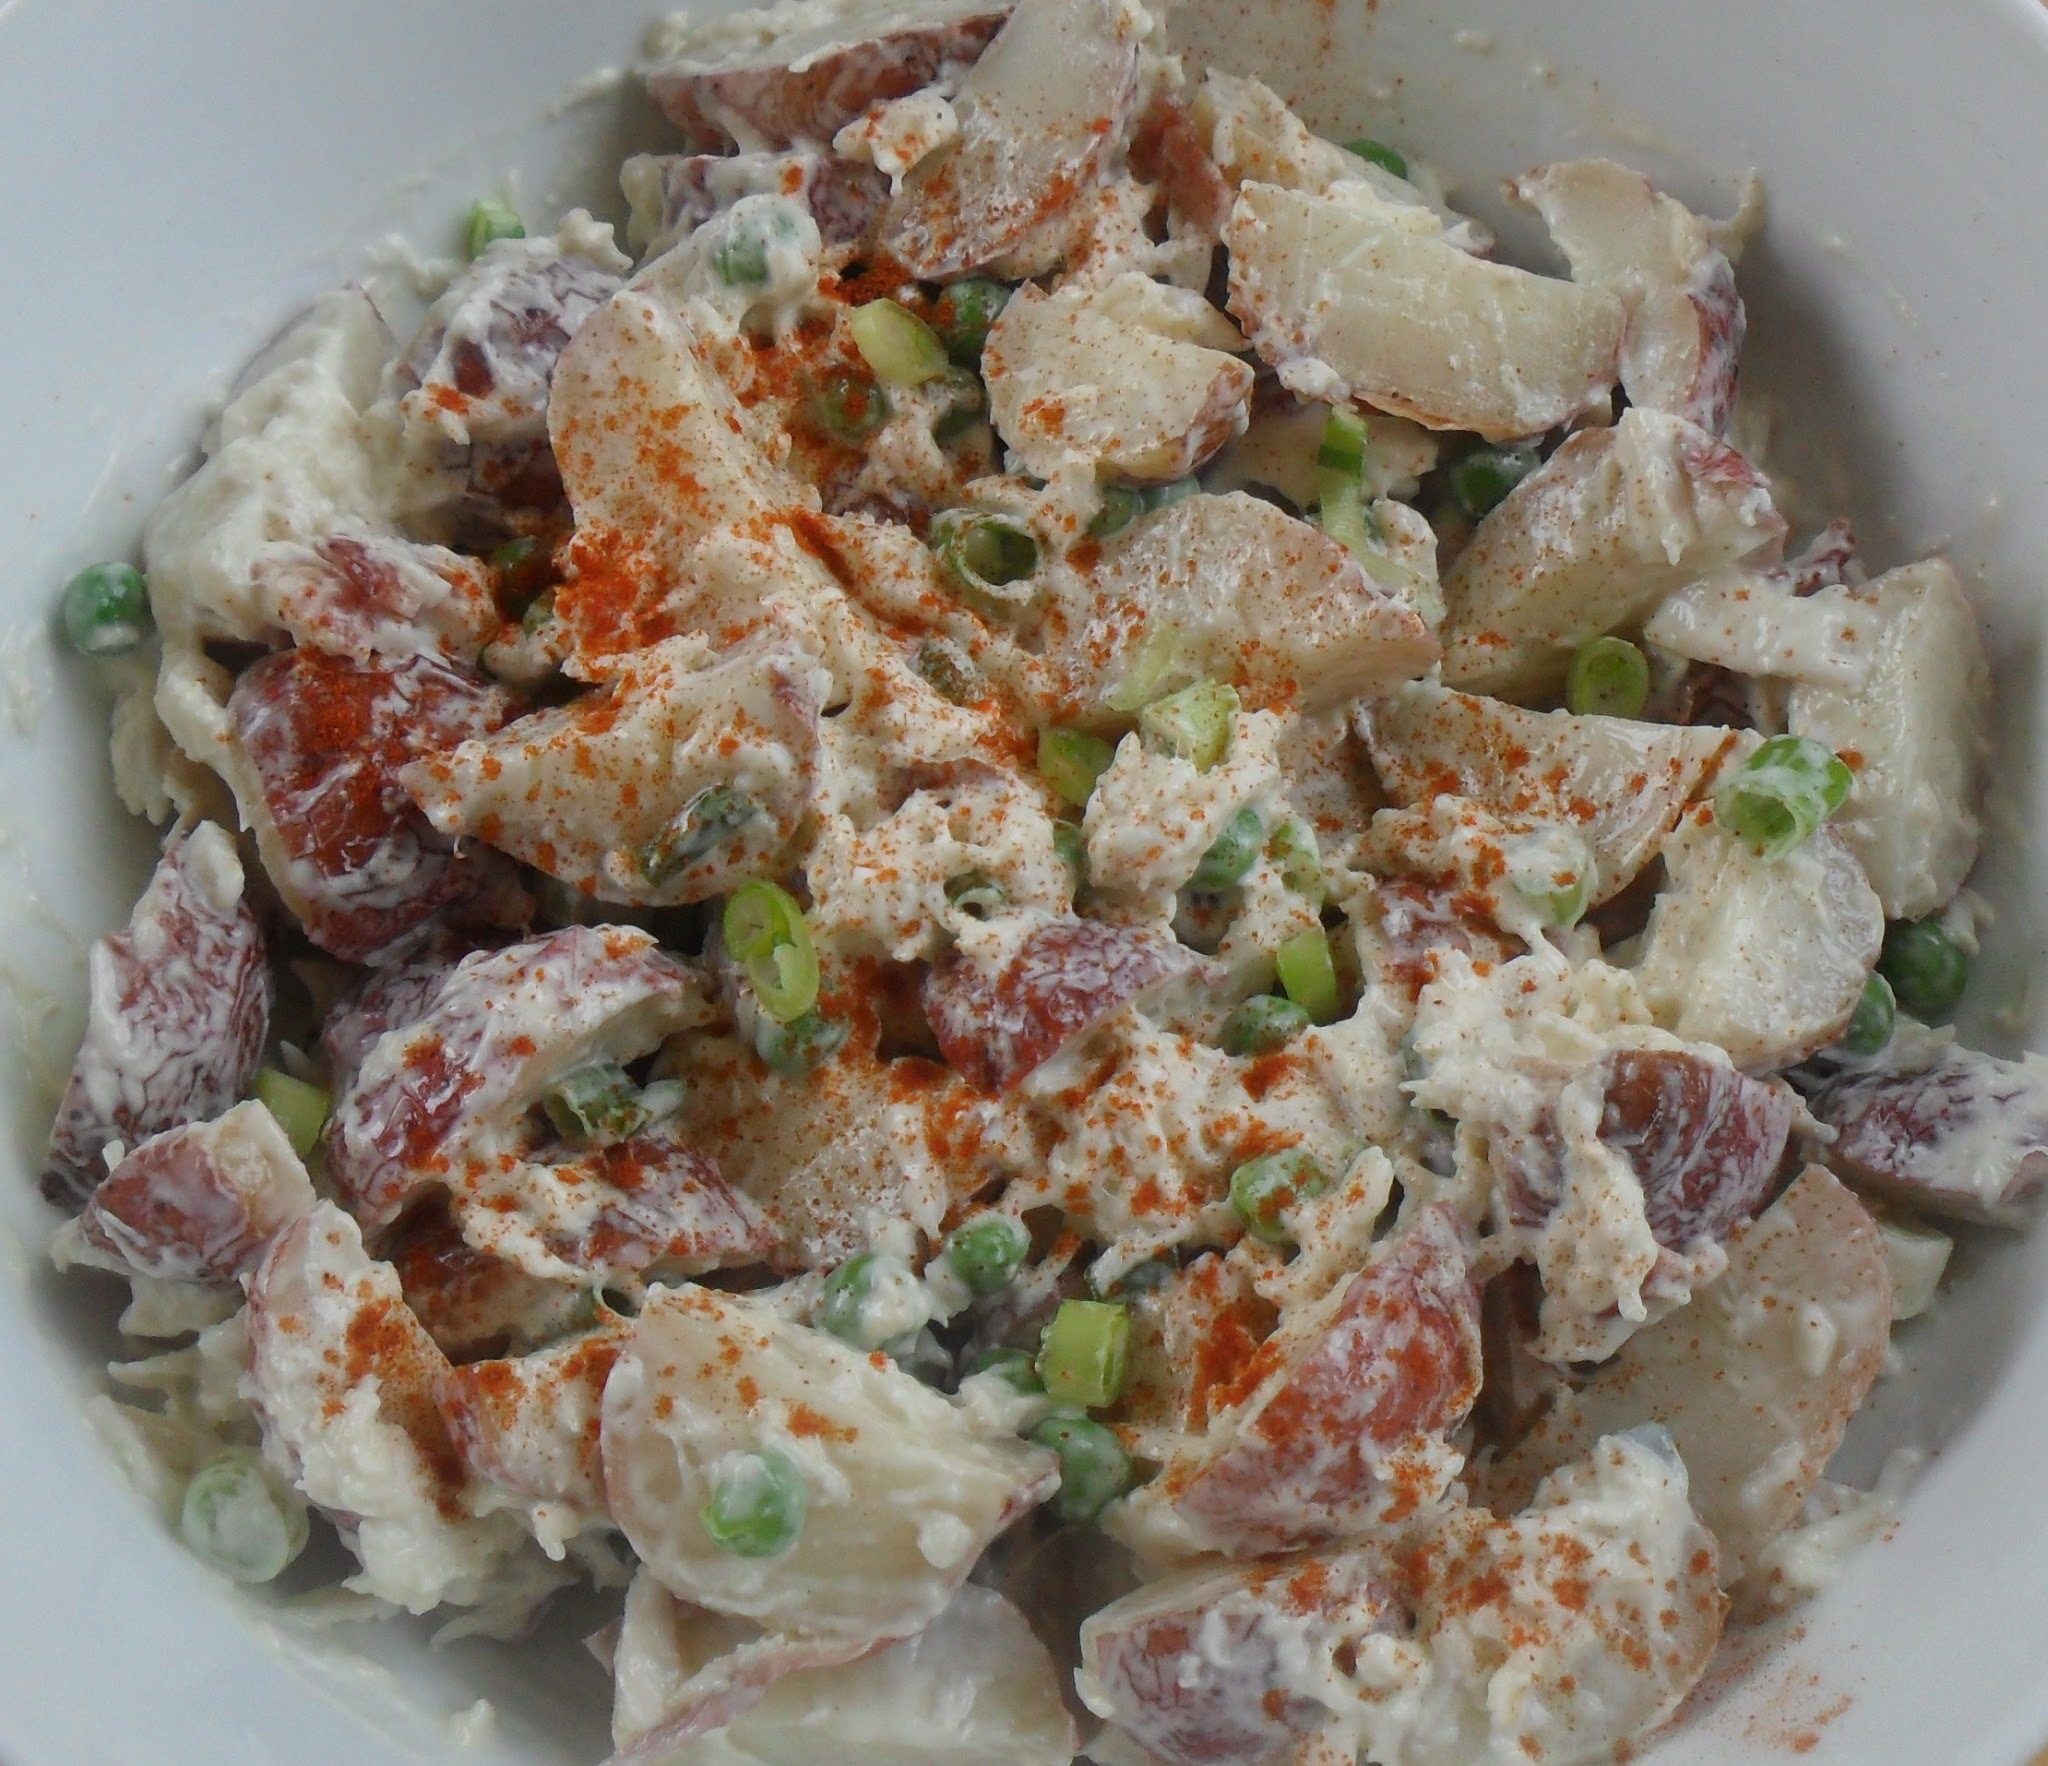 Roasted Potato & Crab Salad...A Review of the book that inspired the recipe